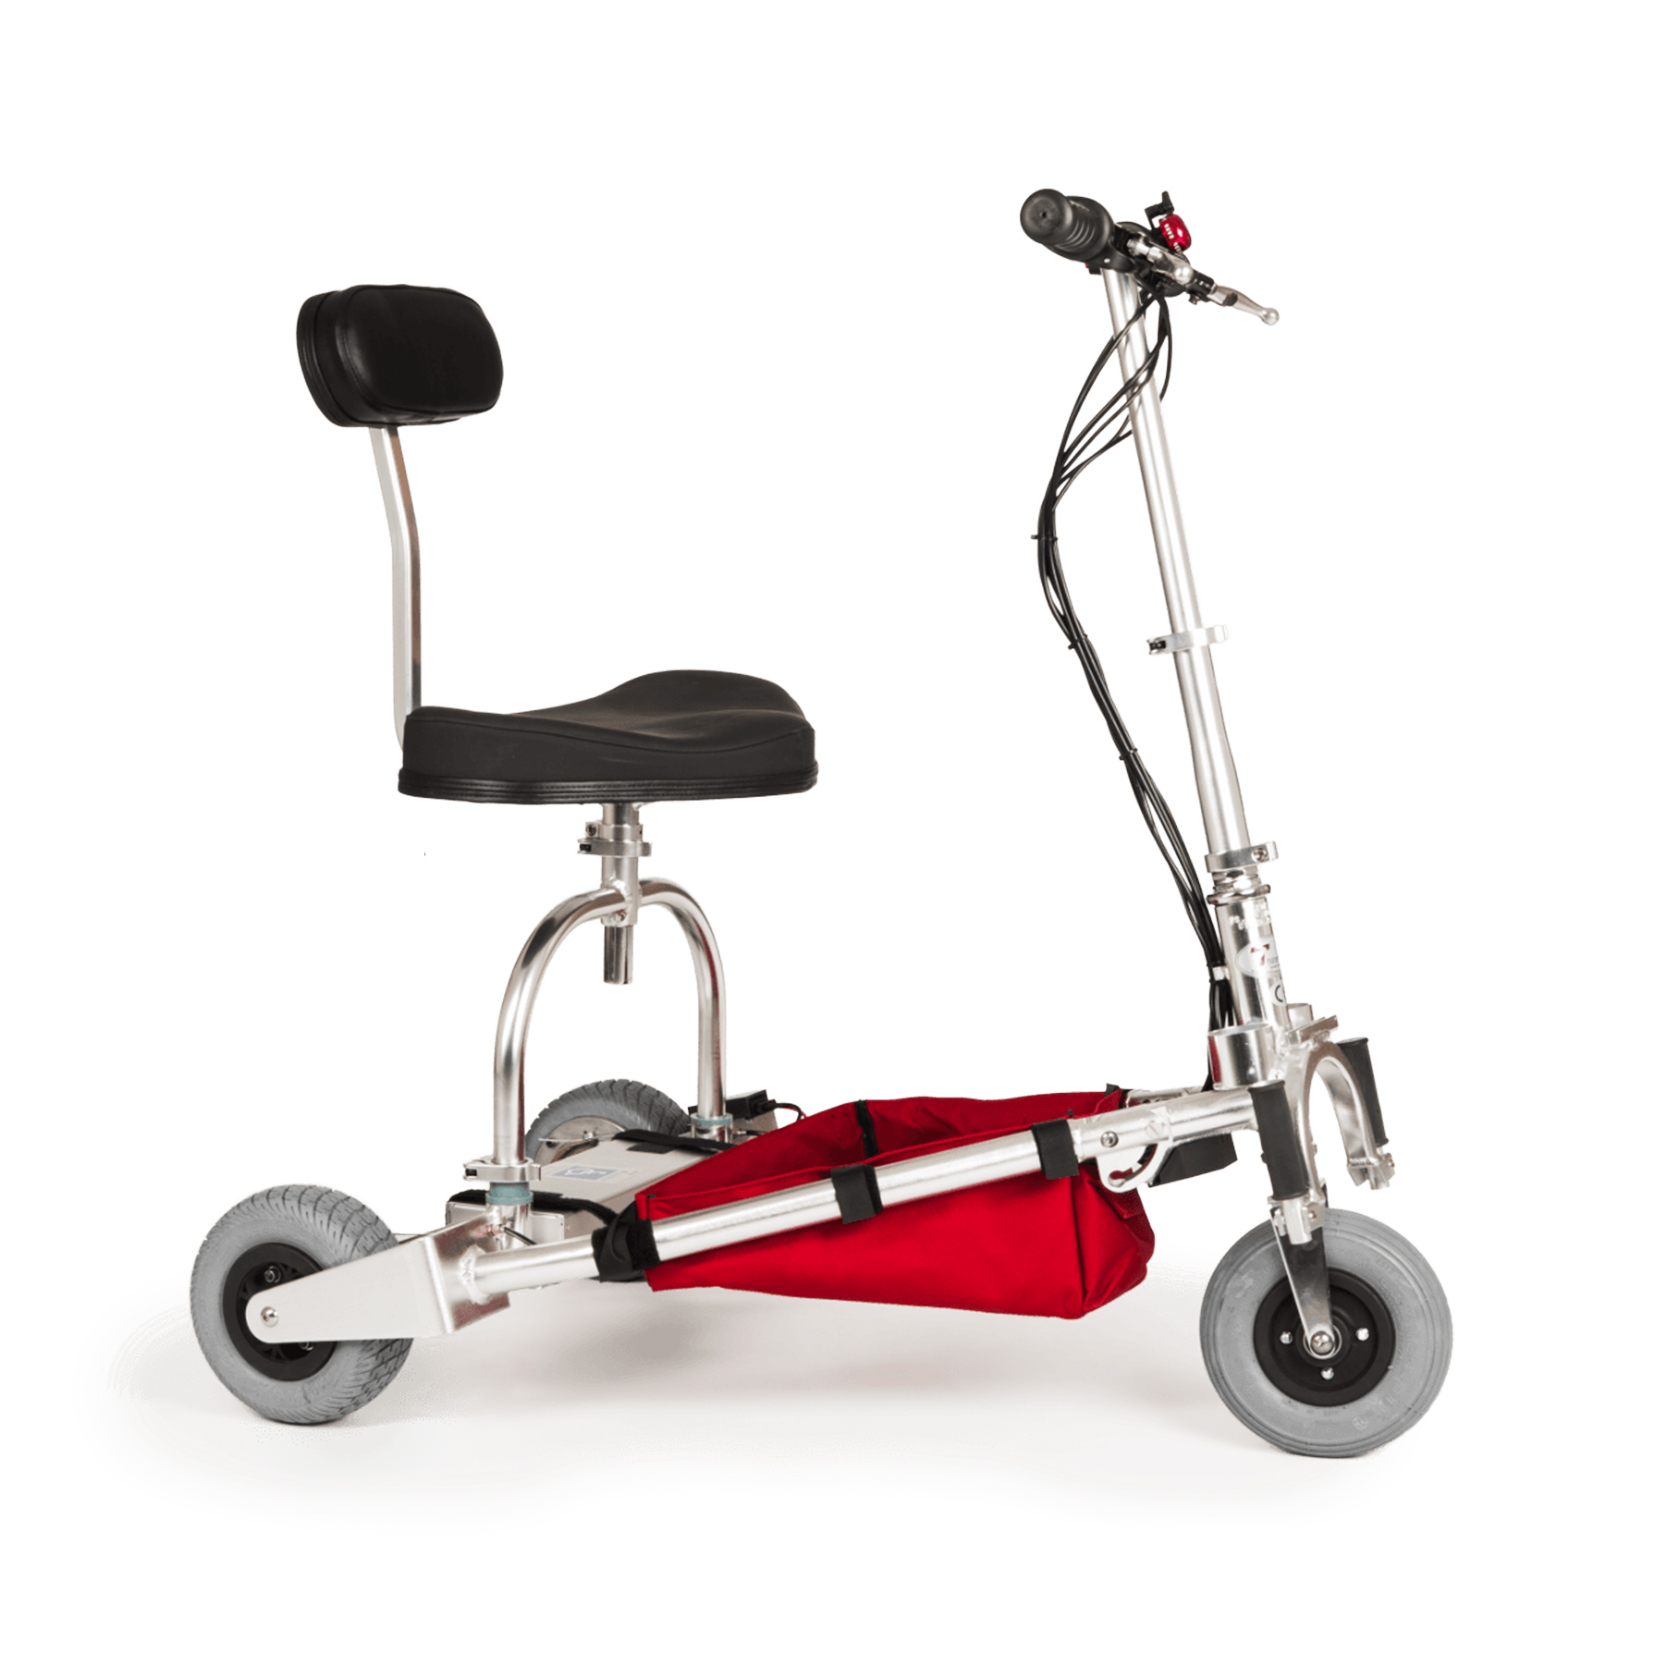 TravelScoot - Worlds lightest mobility scooter. Only 16kgs